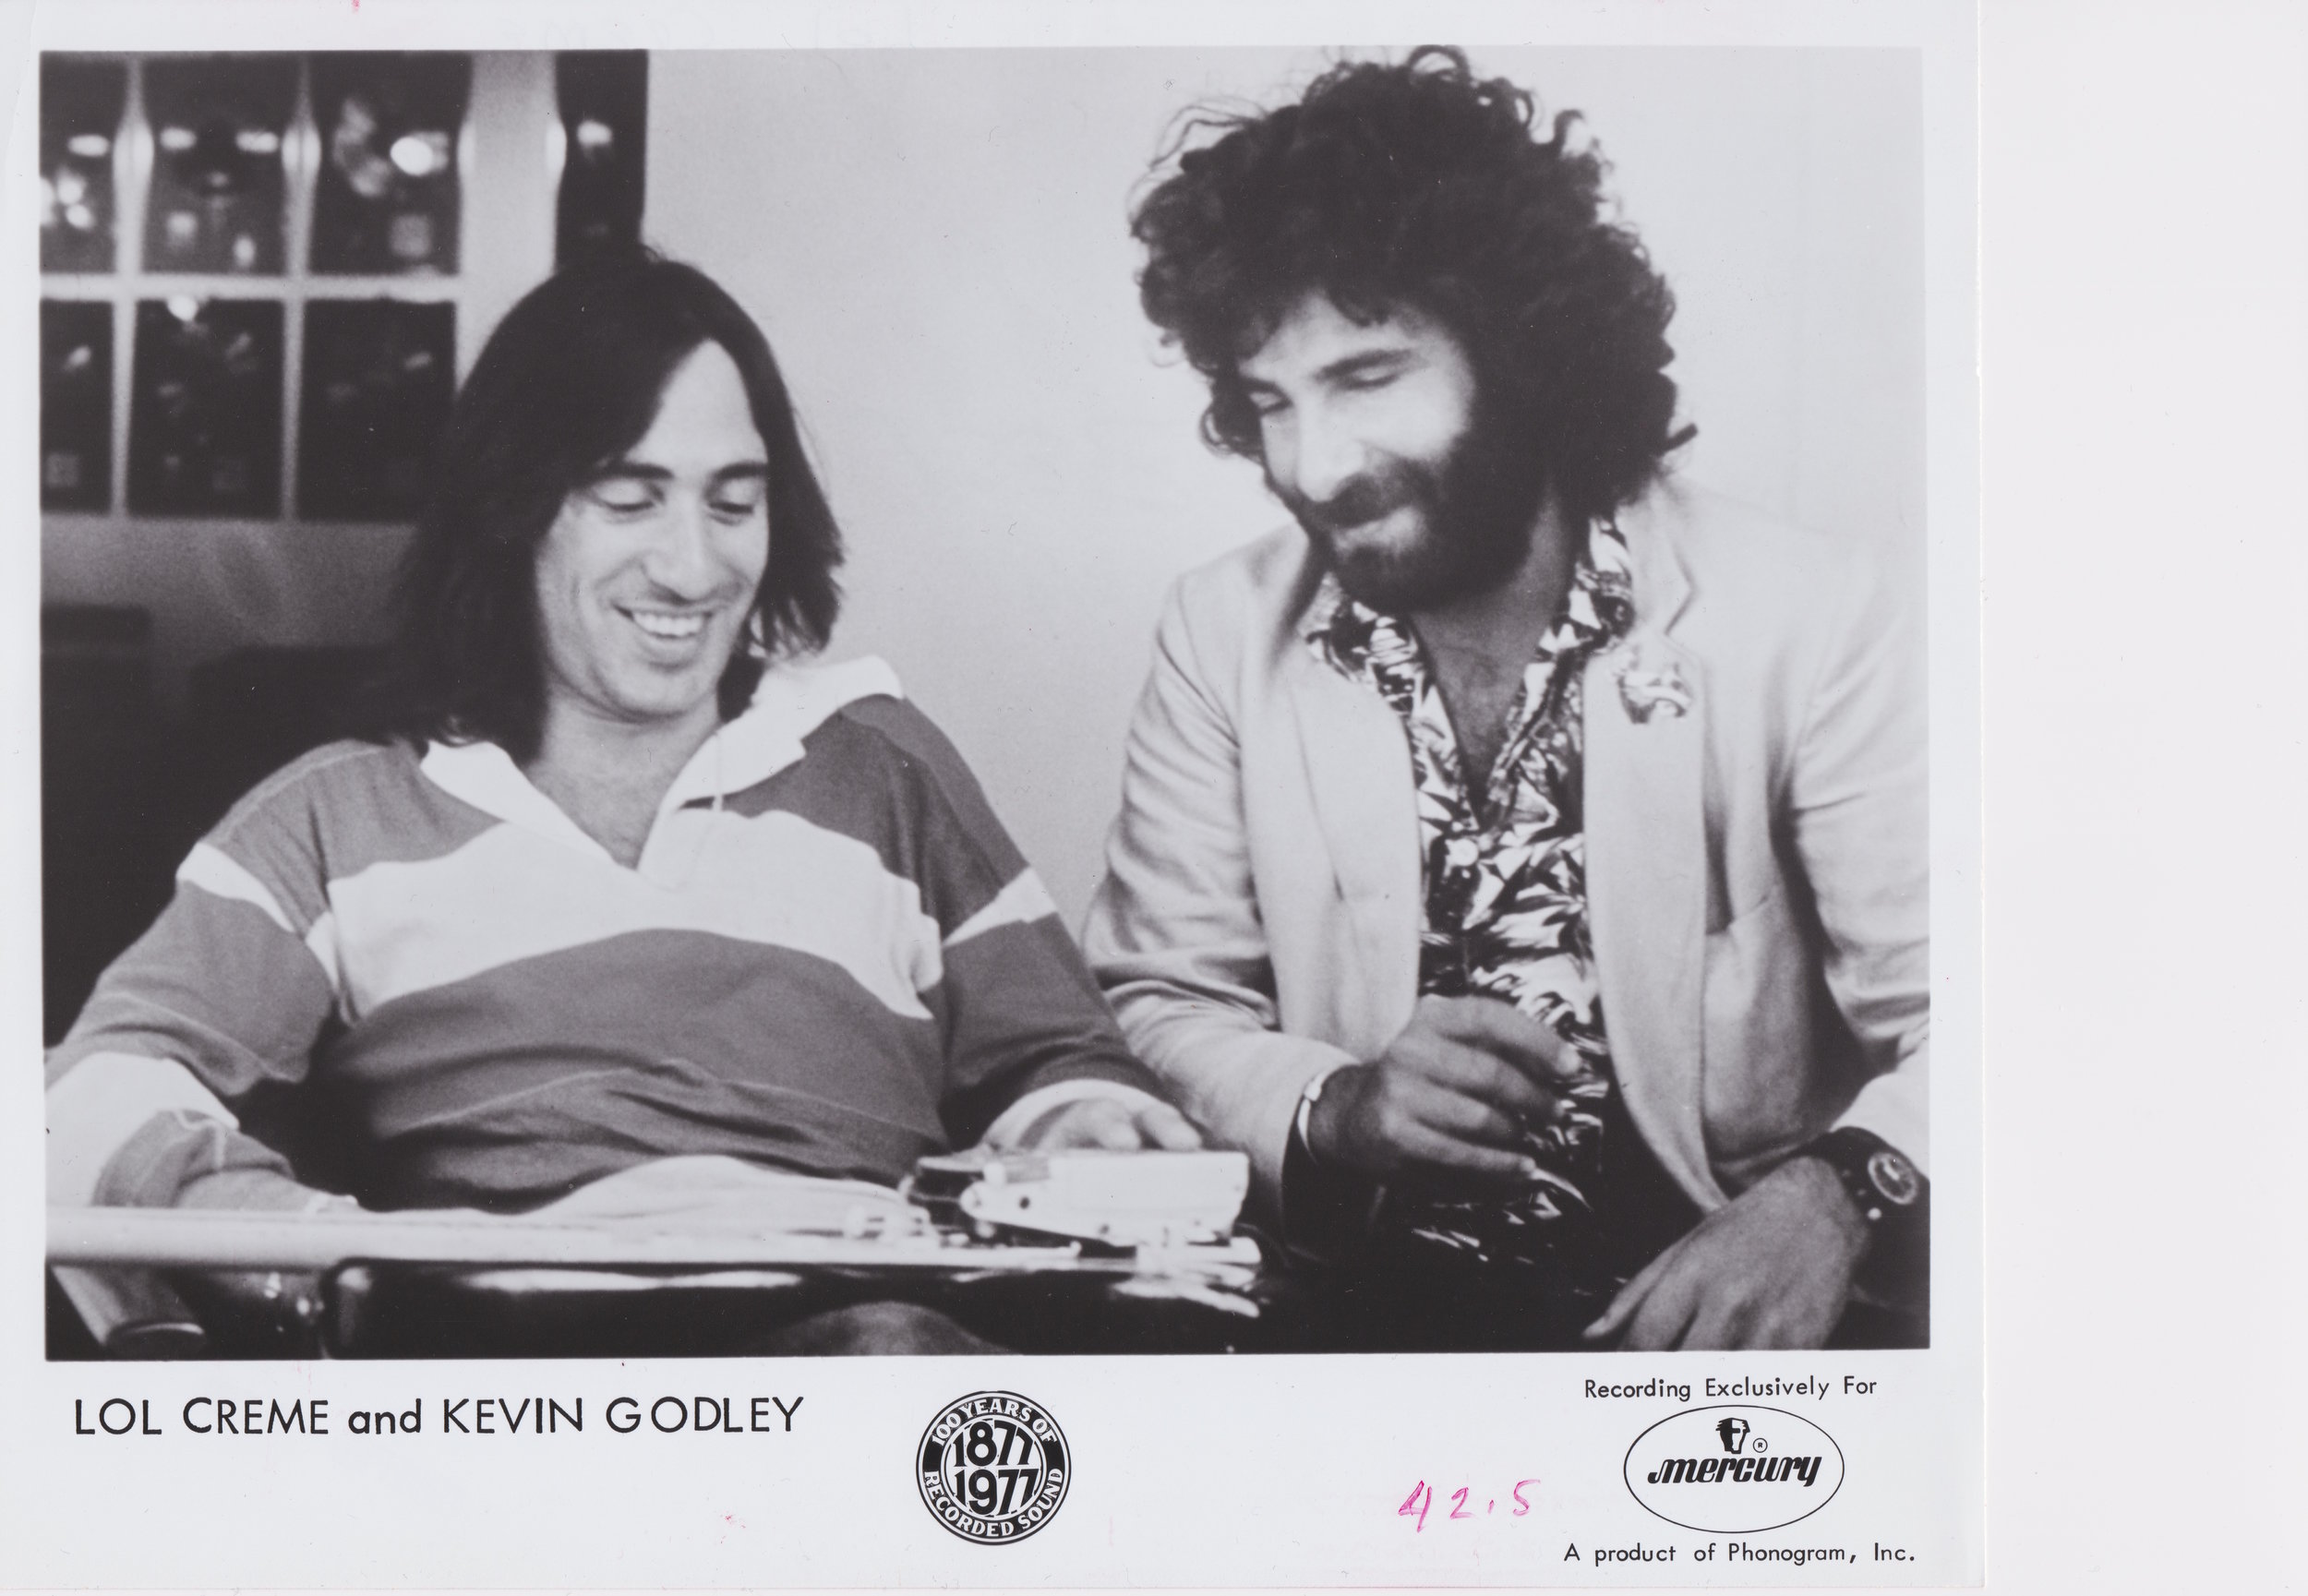 Godley and Creme promotional photo